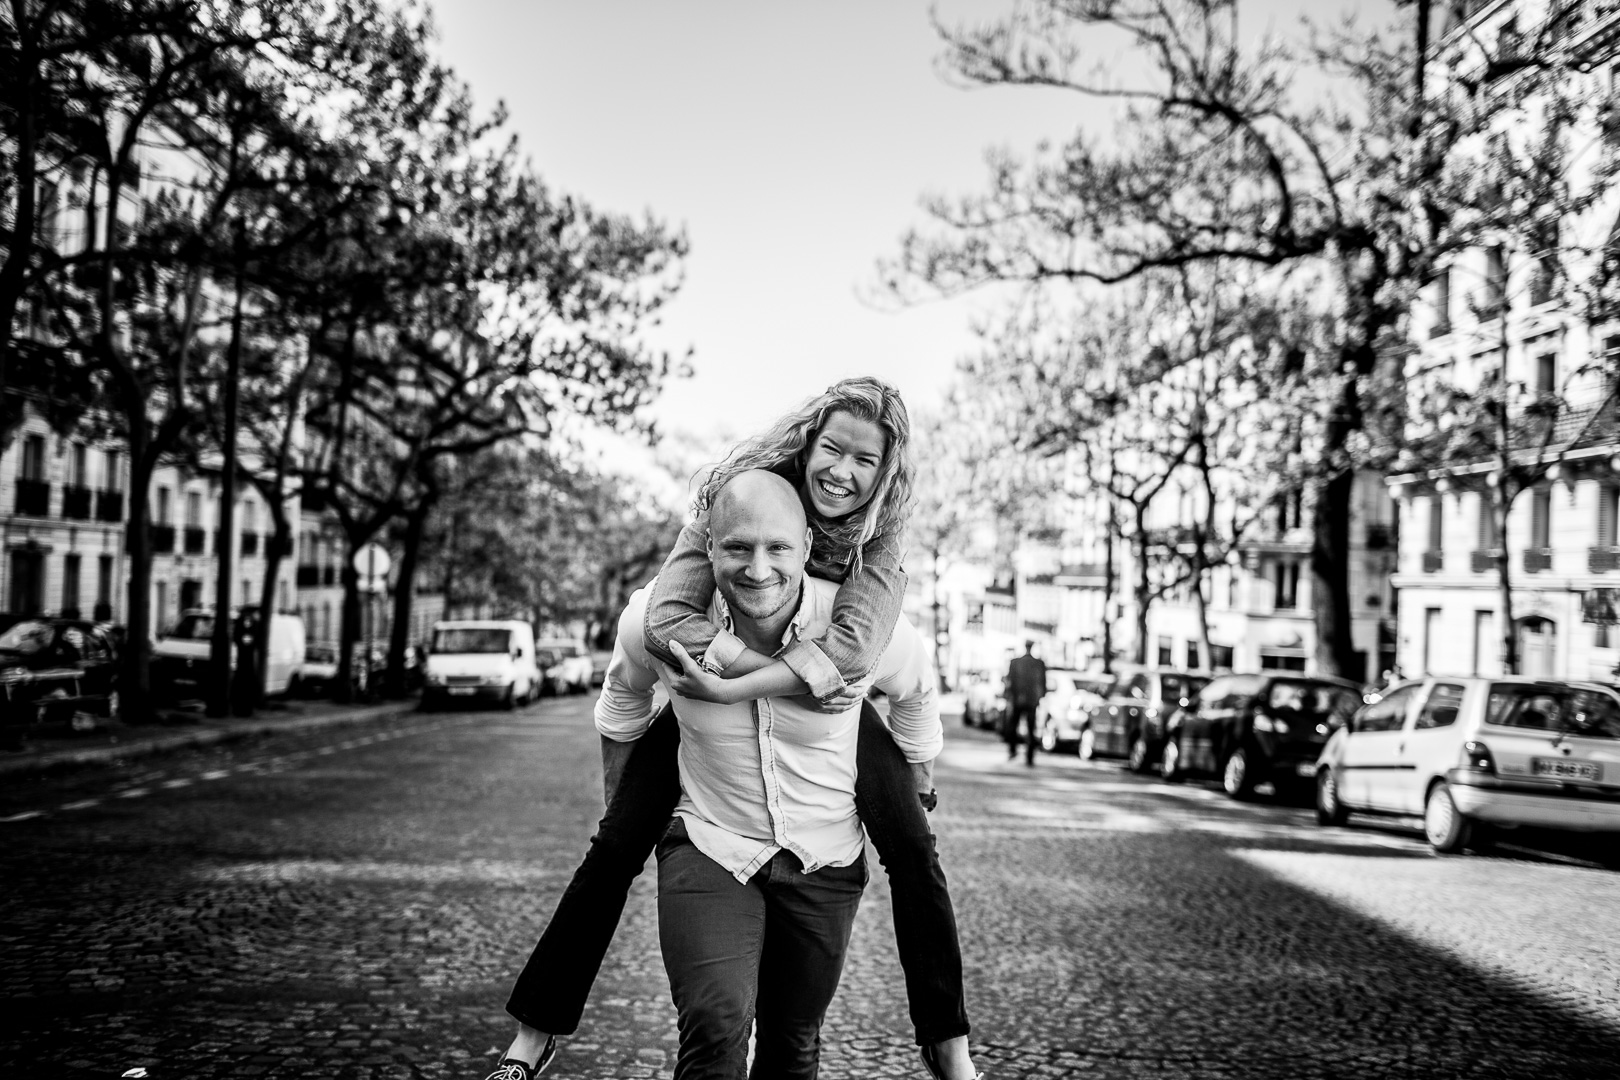 Paarfotos in Paris - Engagementshooting - Liebe